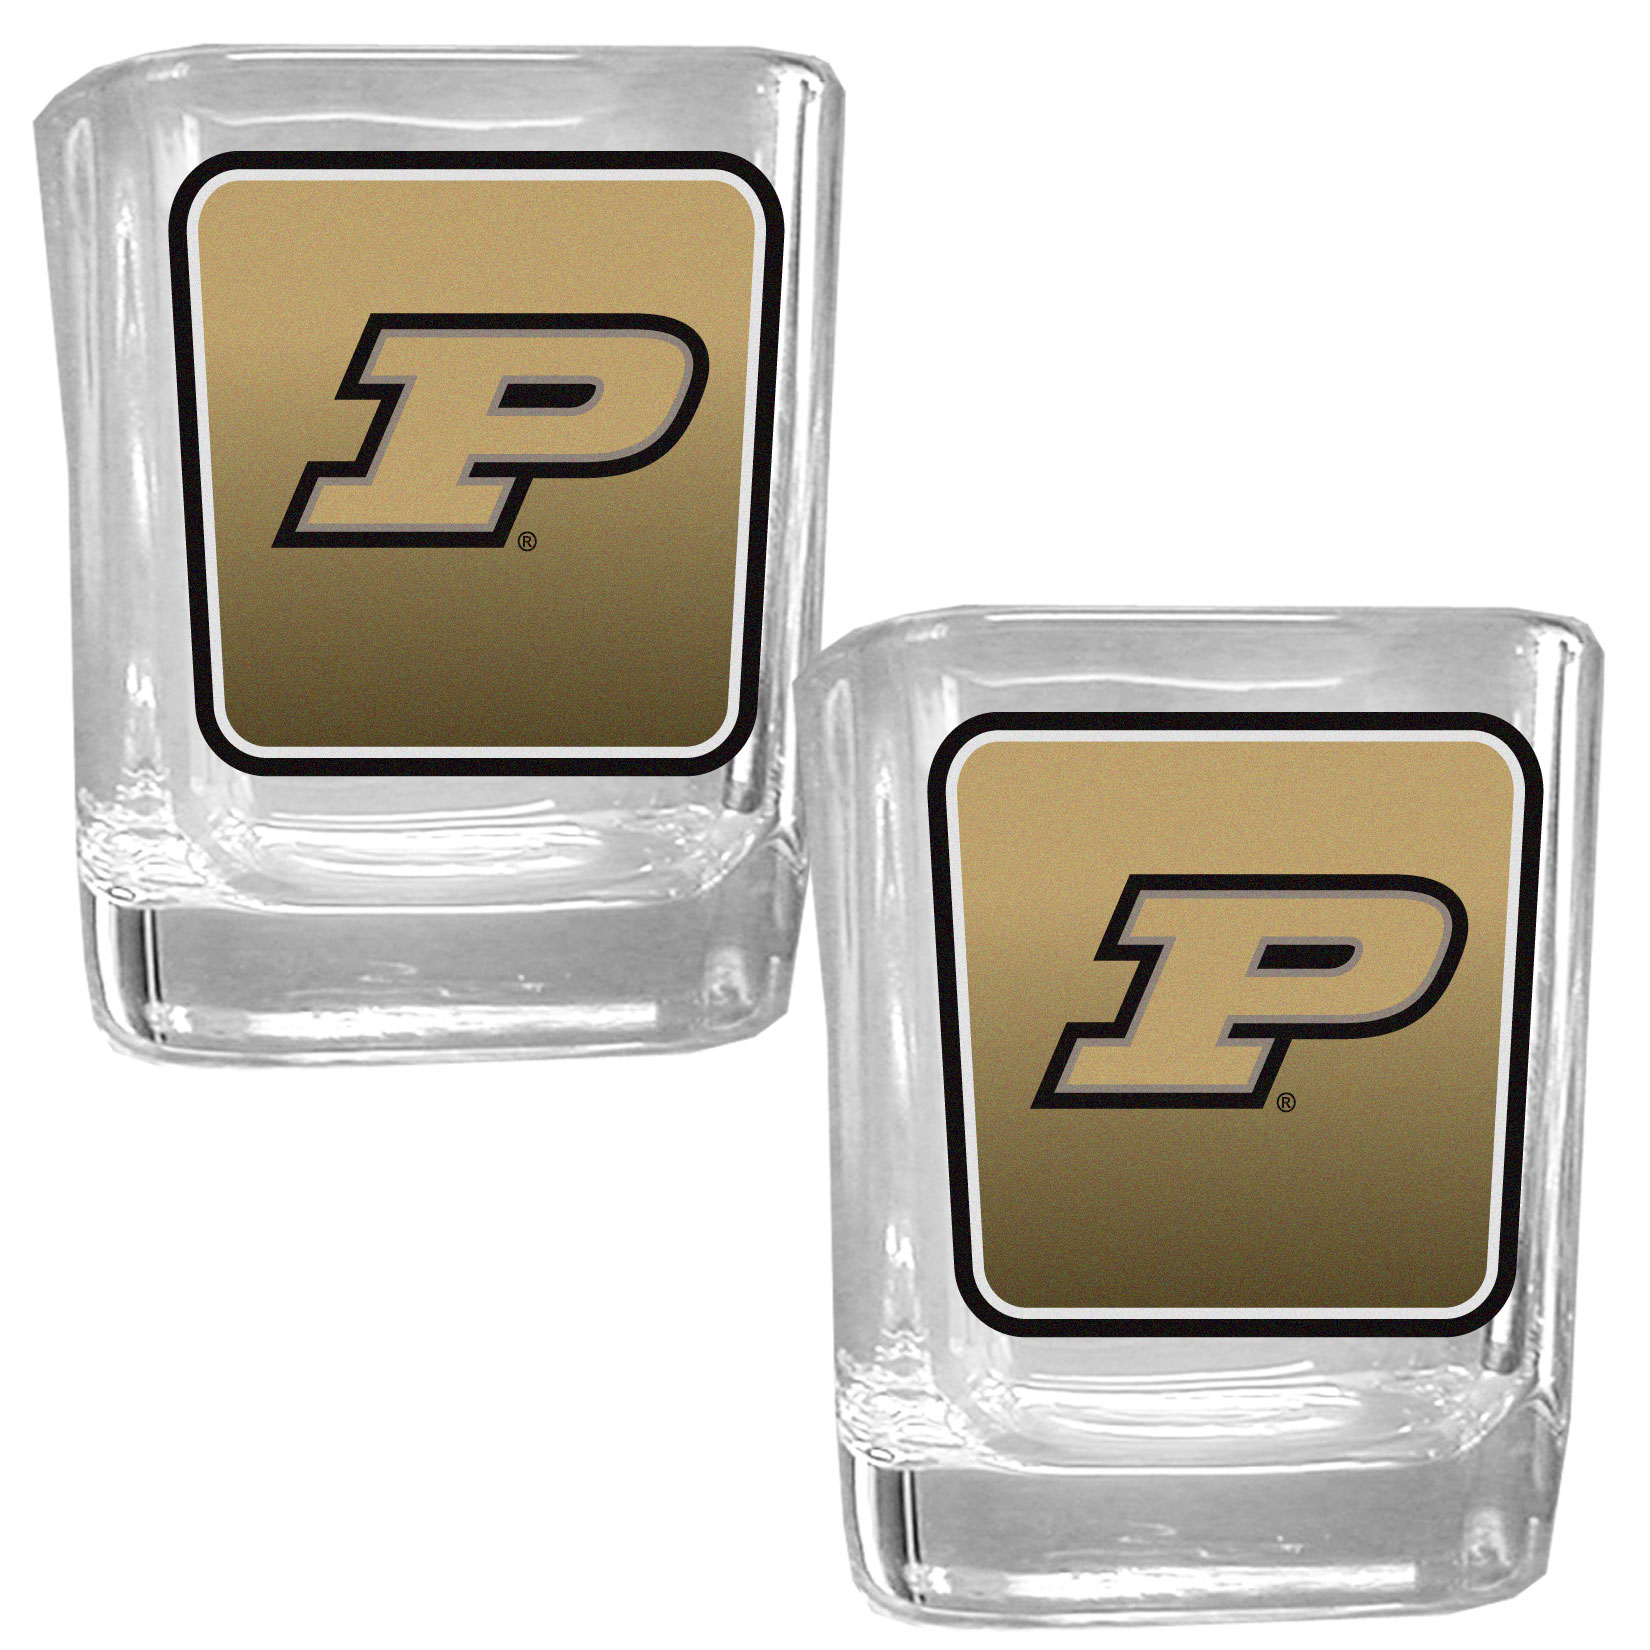 Purdue Boilermakers Square Glass Shot Glass Set - Our glass shot glasses are perfect for collectors or any game day event. The 2 ounce glasses feature bright, vidid digital Purdue Boilermakers graphics. Comes in a set of 2.